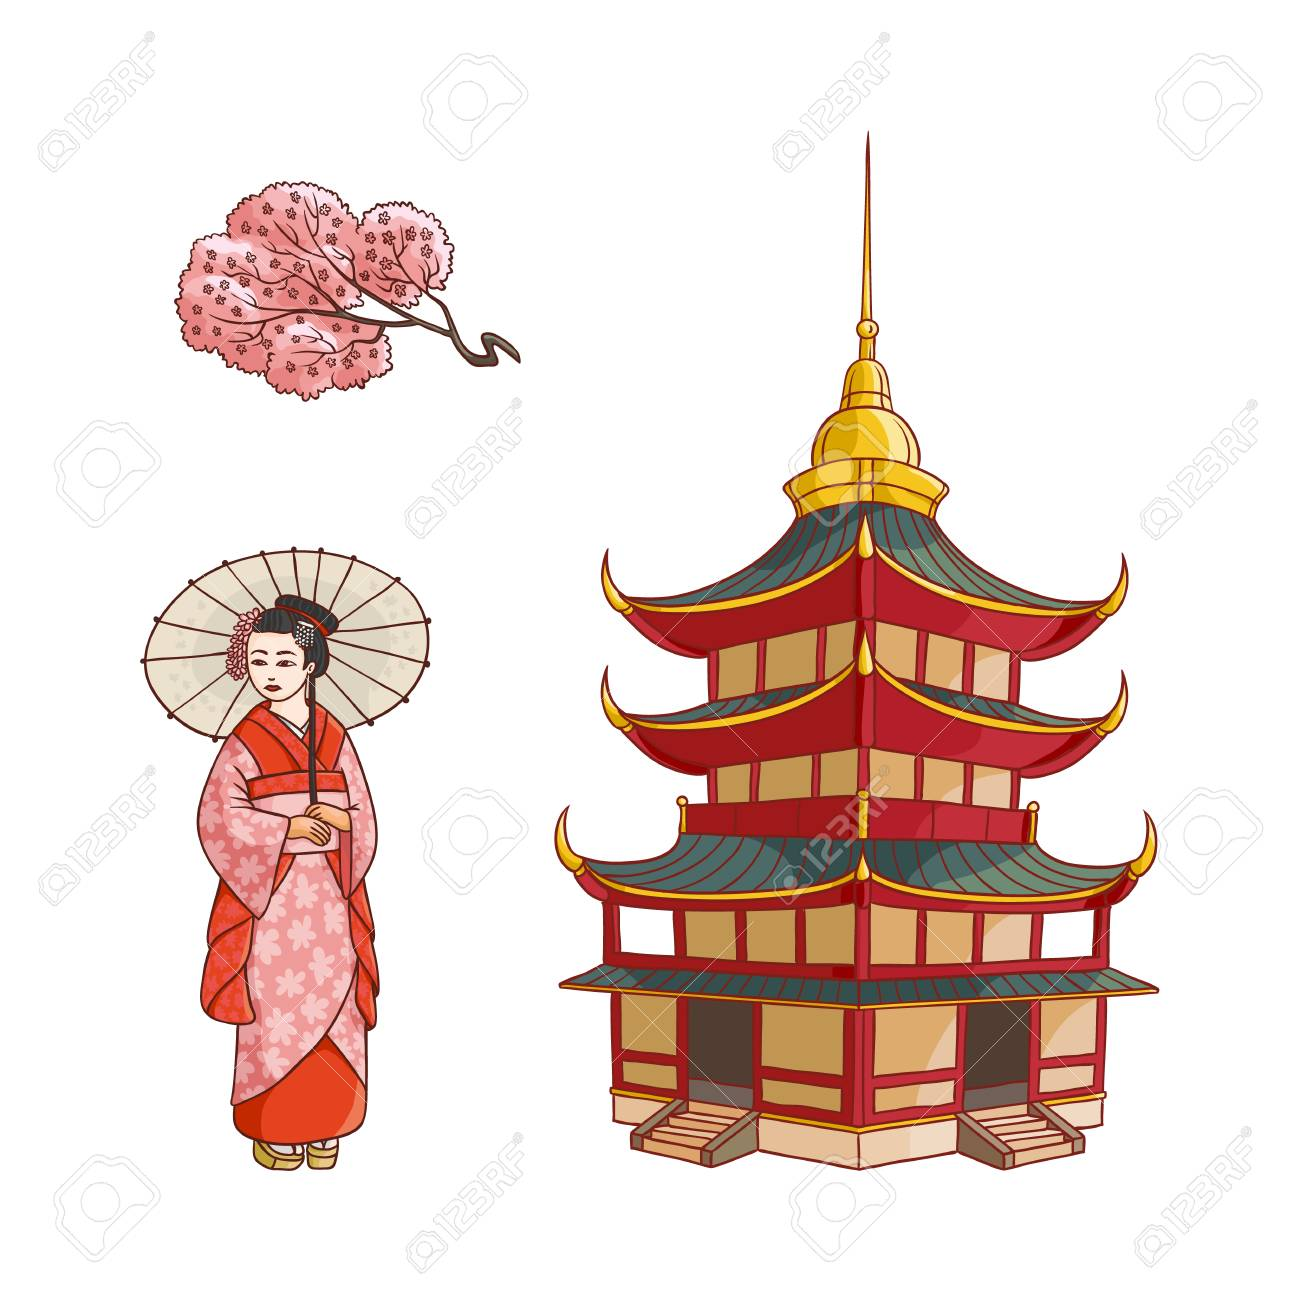 c6b2de2b2b572 Asian japan china oriental symbols concept set. Blooming sakura branch with  flowers, traditional pagoda